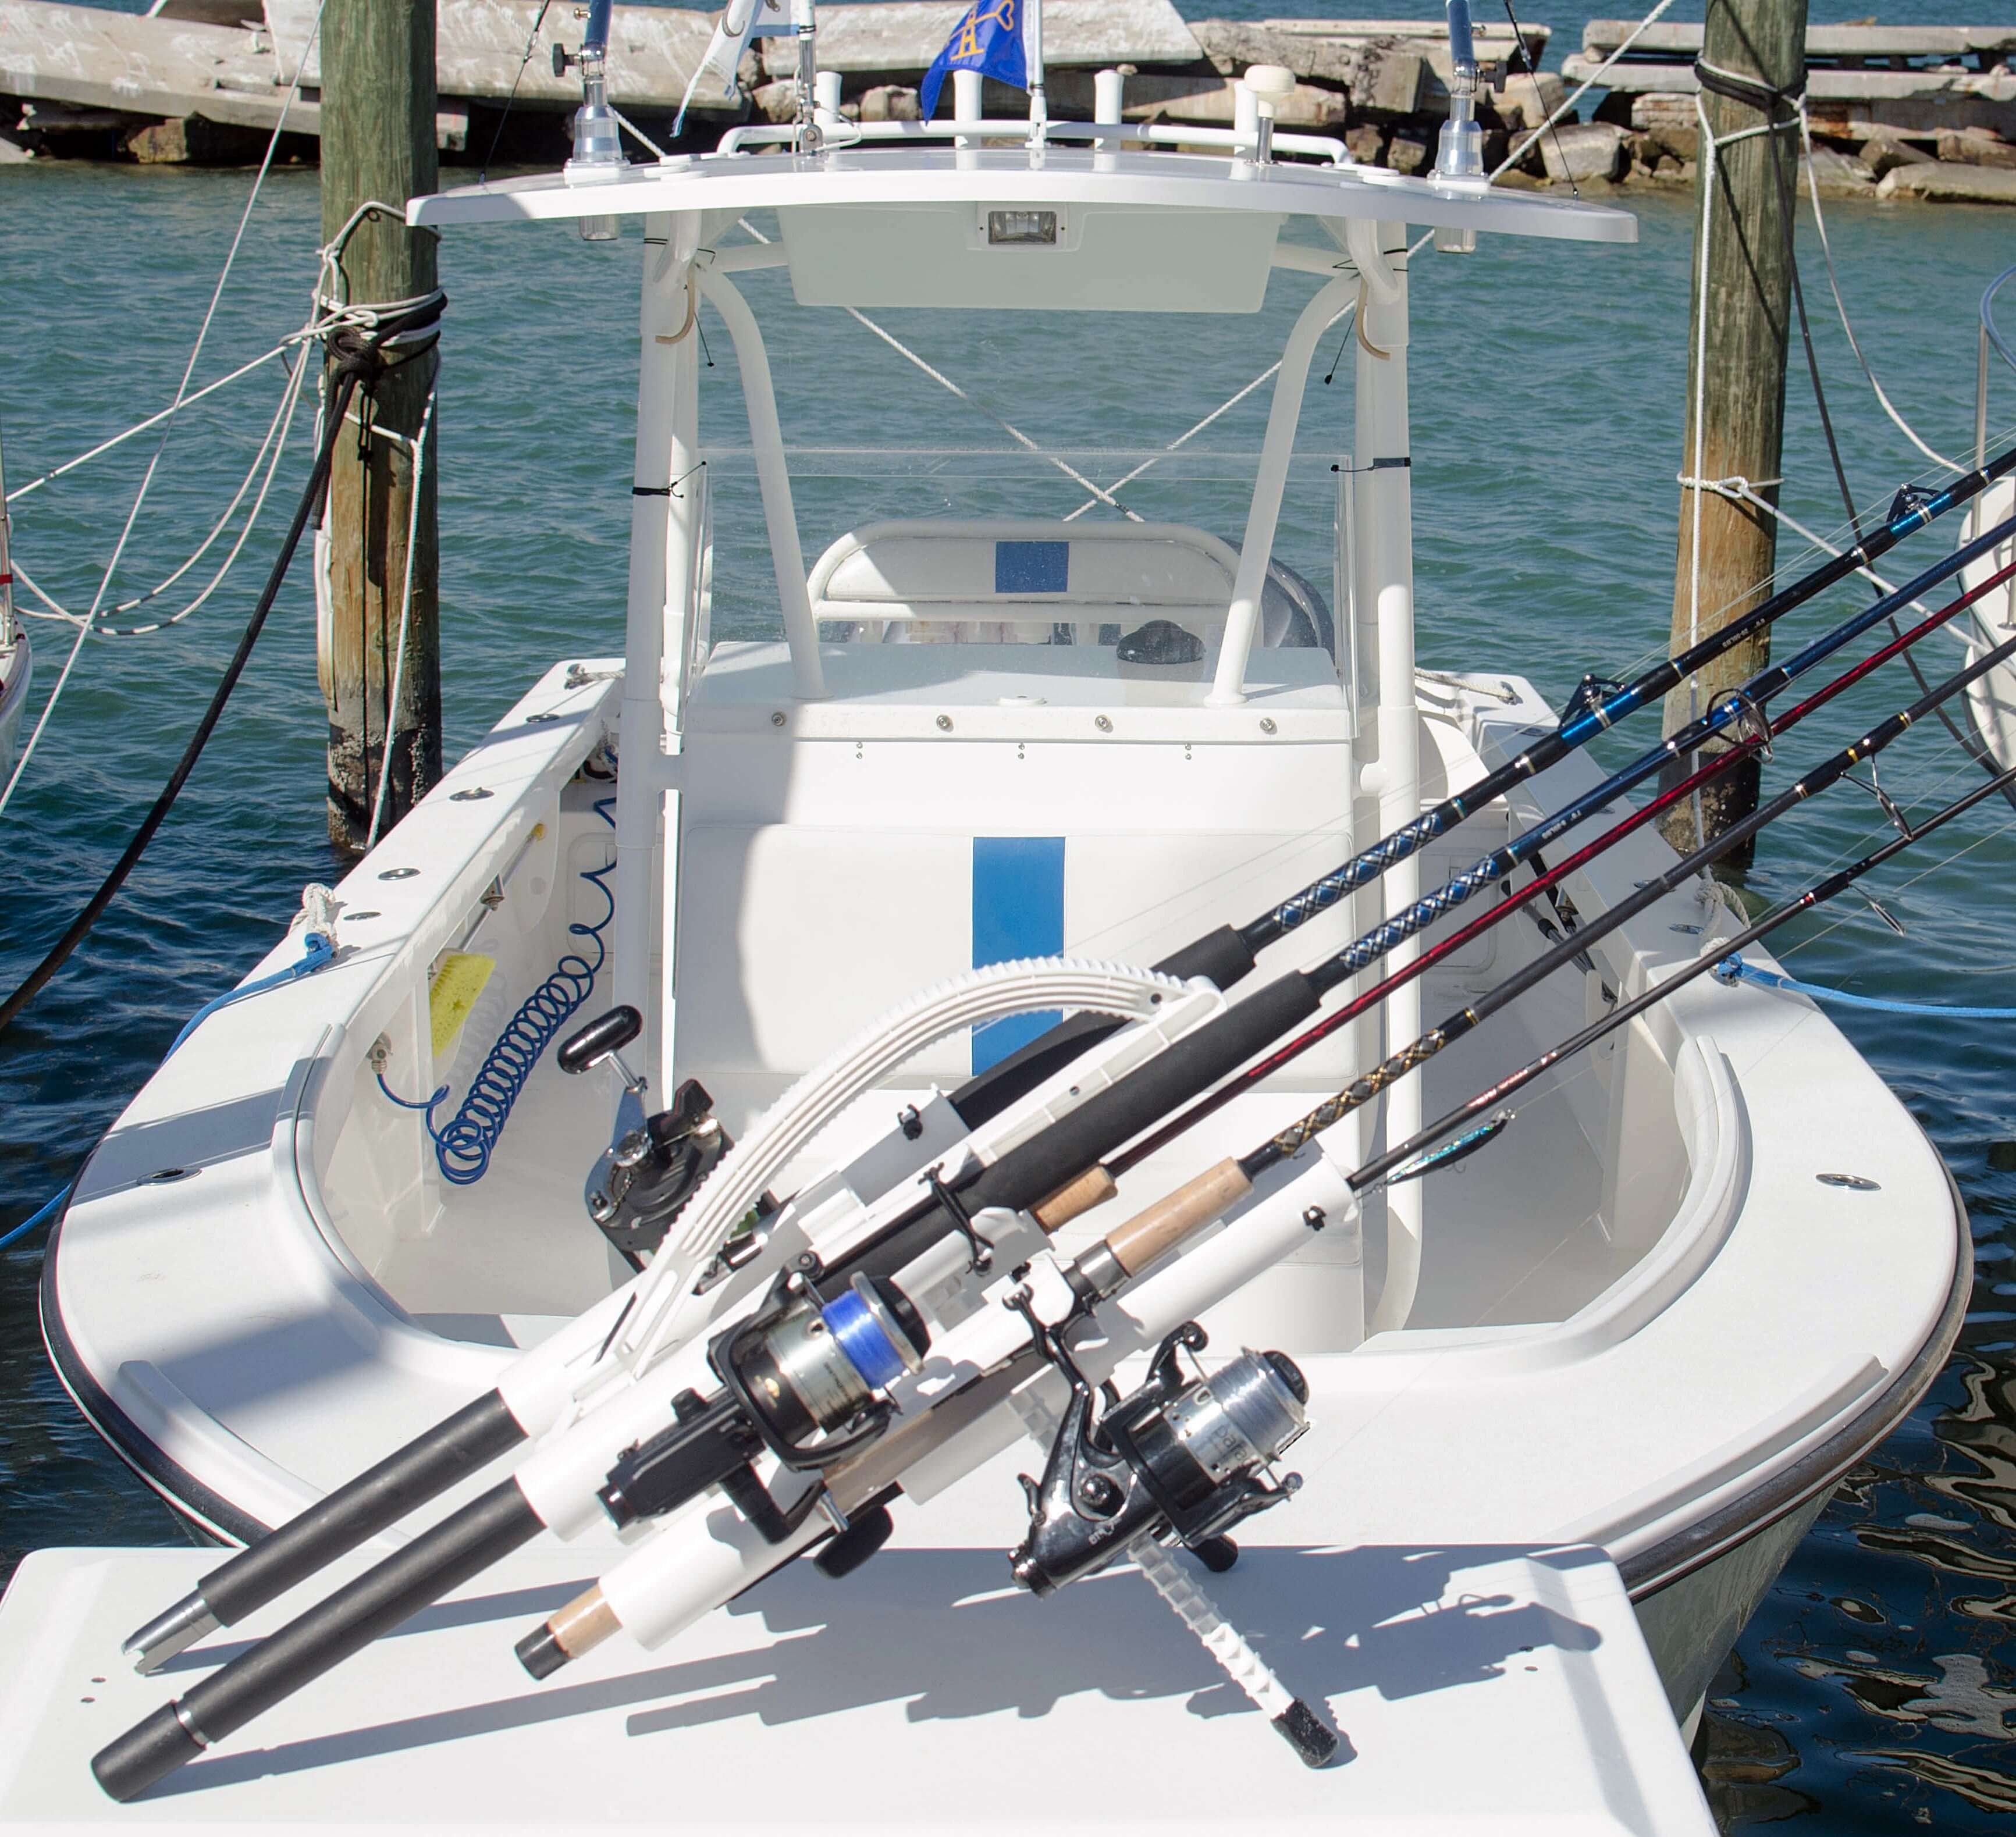 Rod Holder for Boats = Rod Holder for Jetty Fishing = Fishing Rod Stand for Jetty